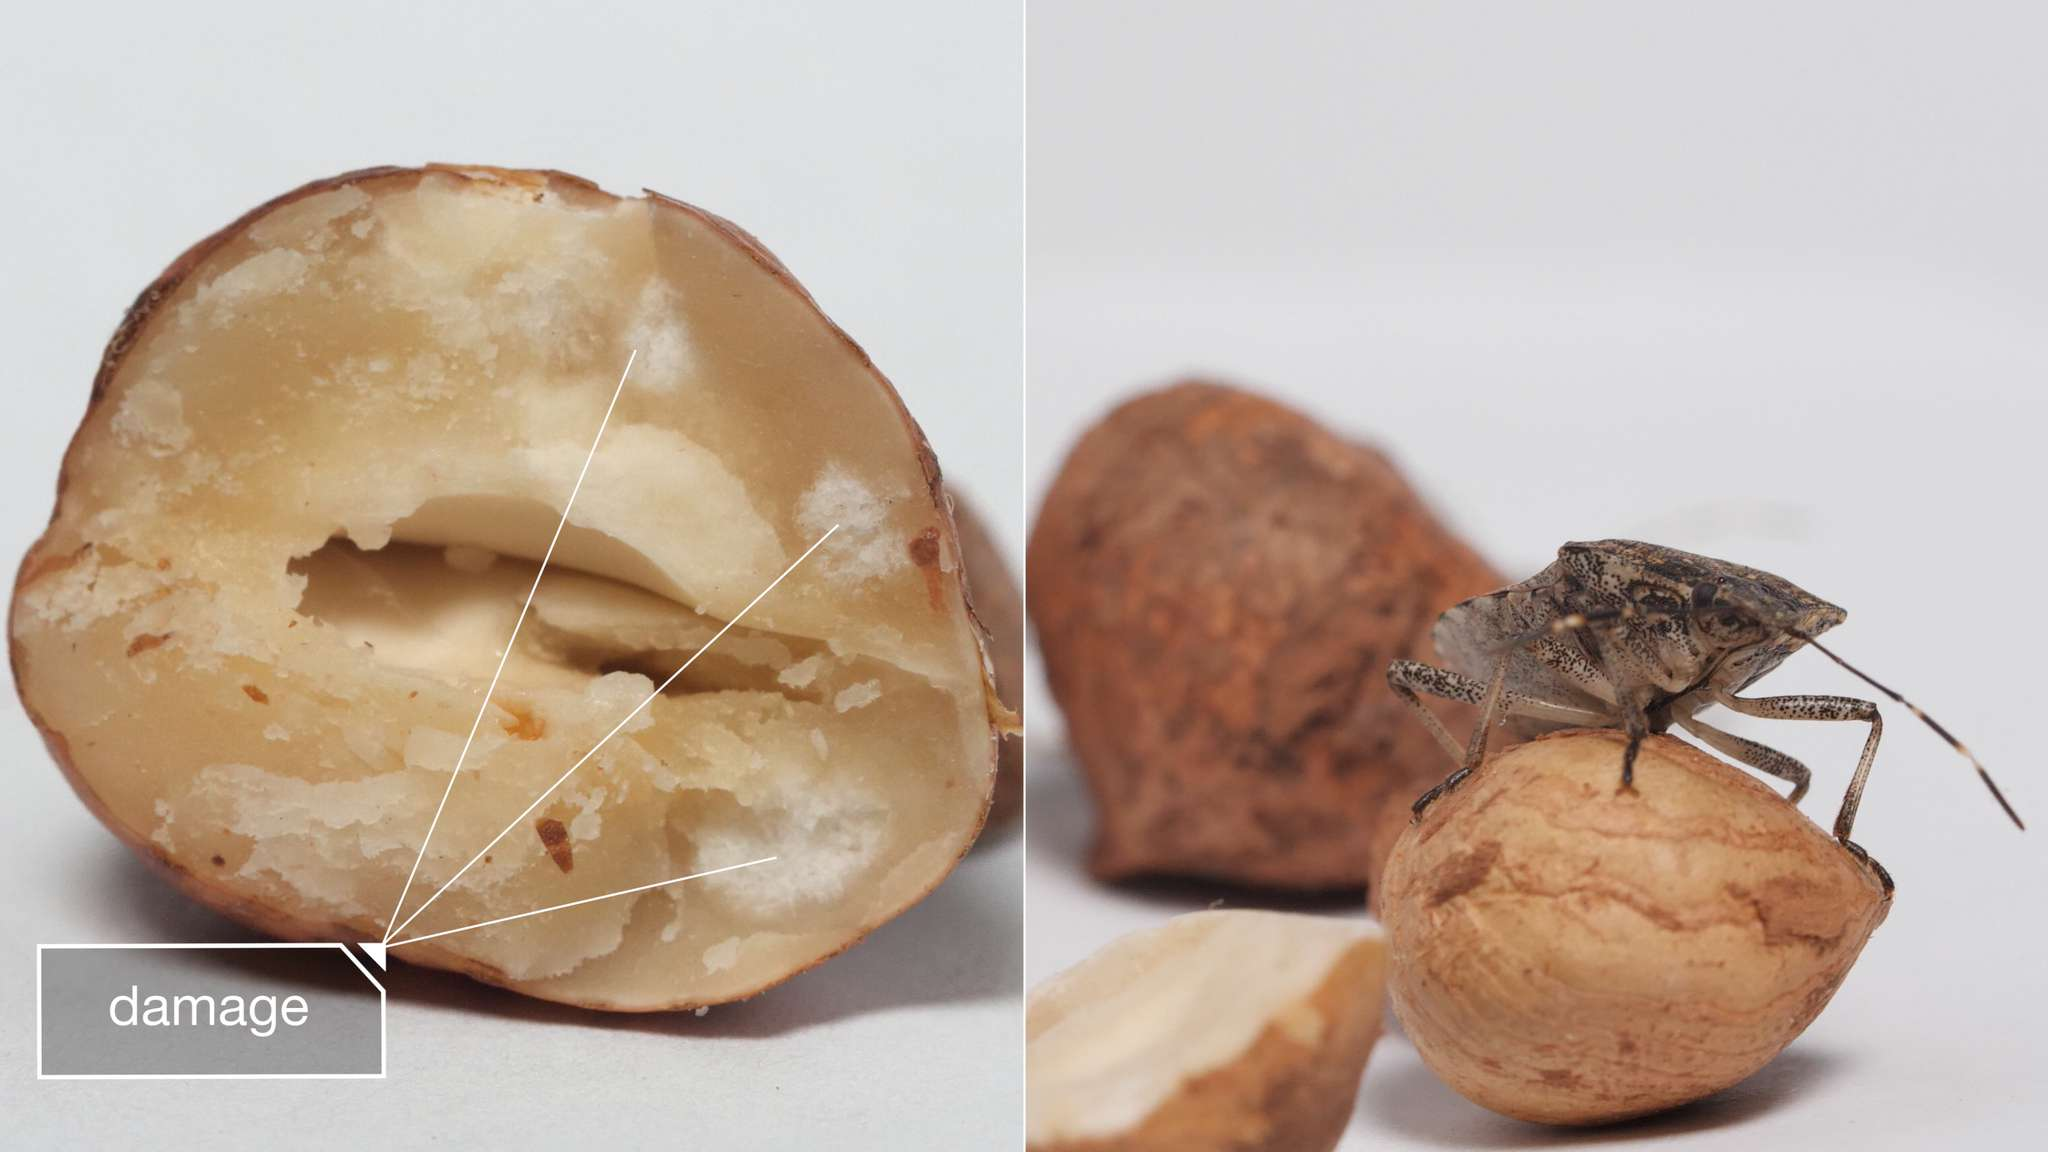 Examples of the damage stink bugs do to food crops.